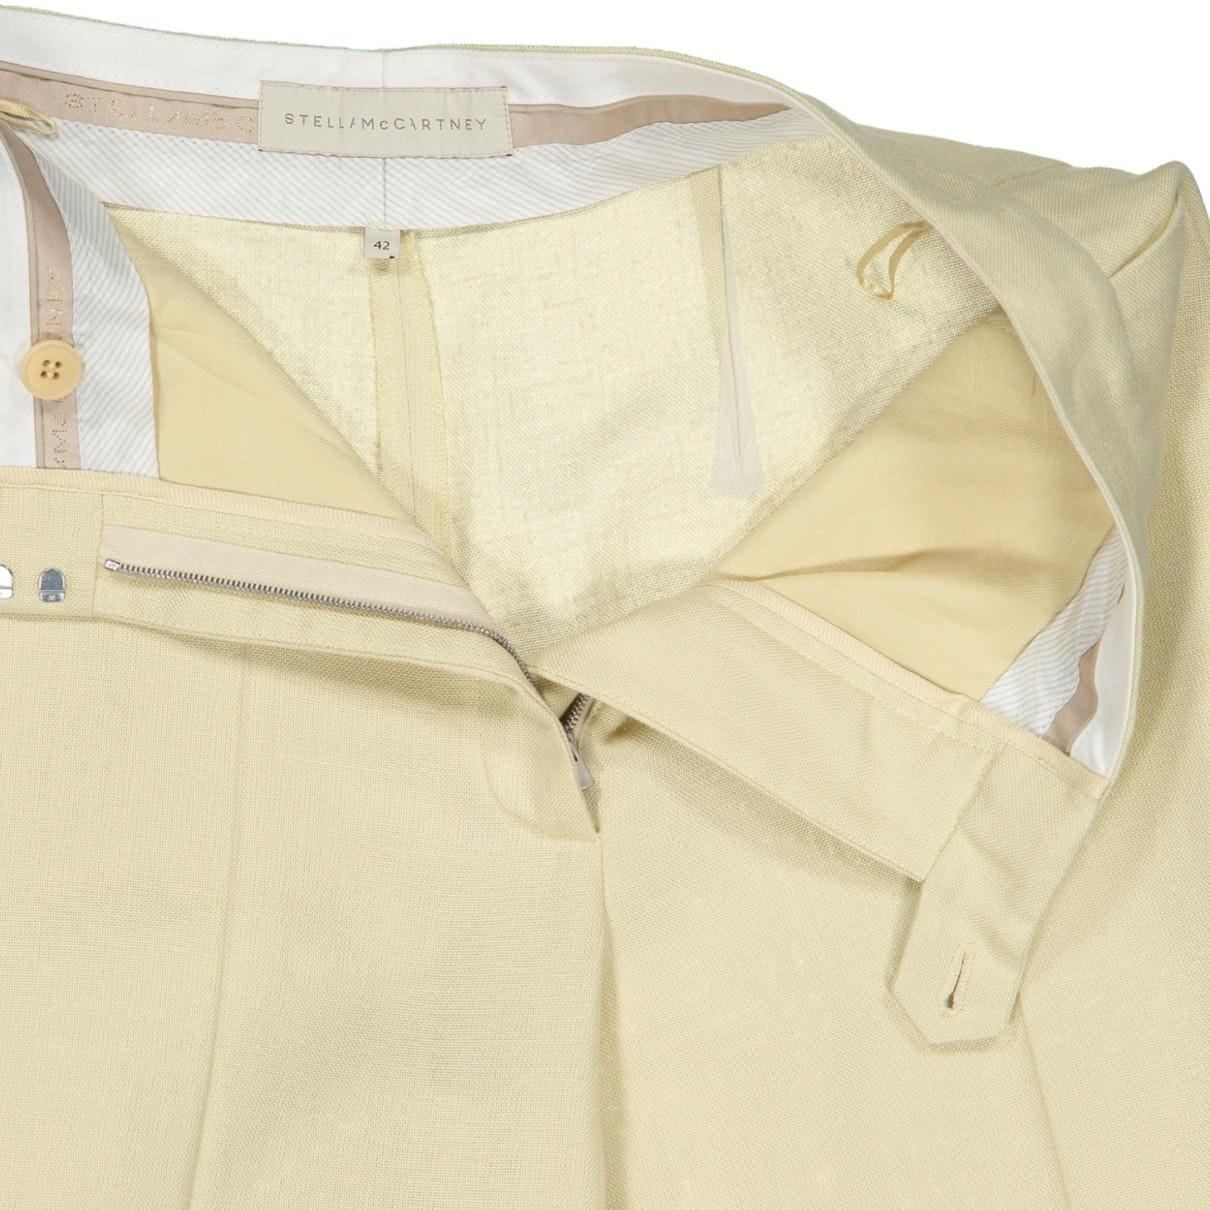 Pantalones en viscosa beige Stella McCartney de color Neutro